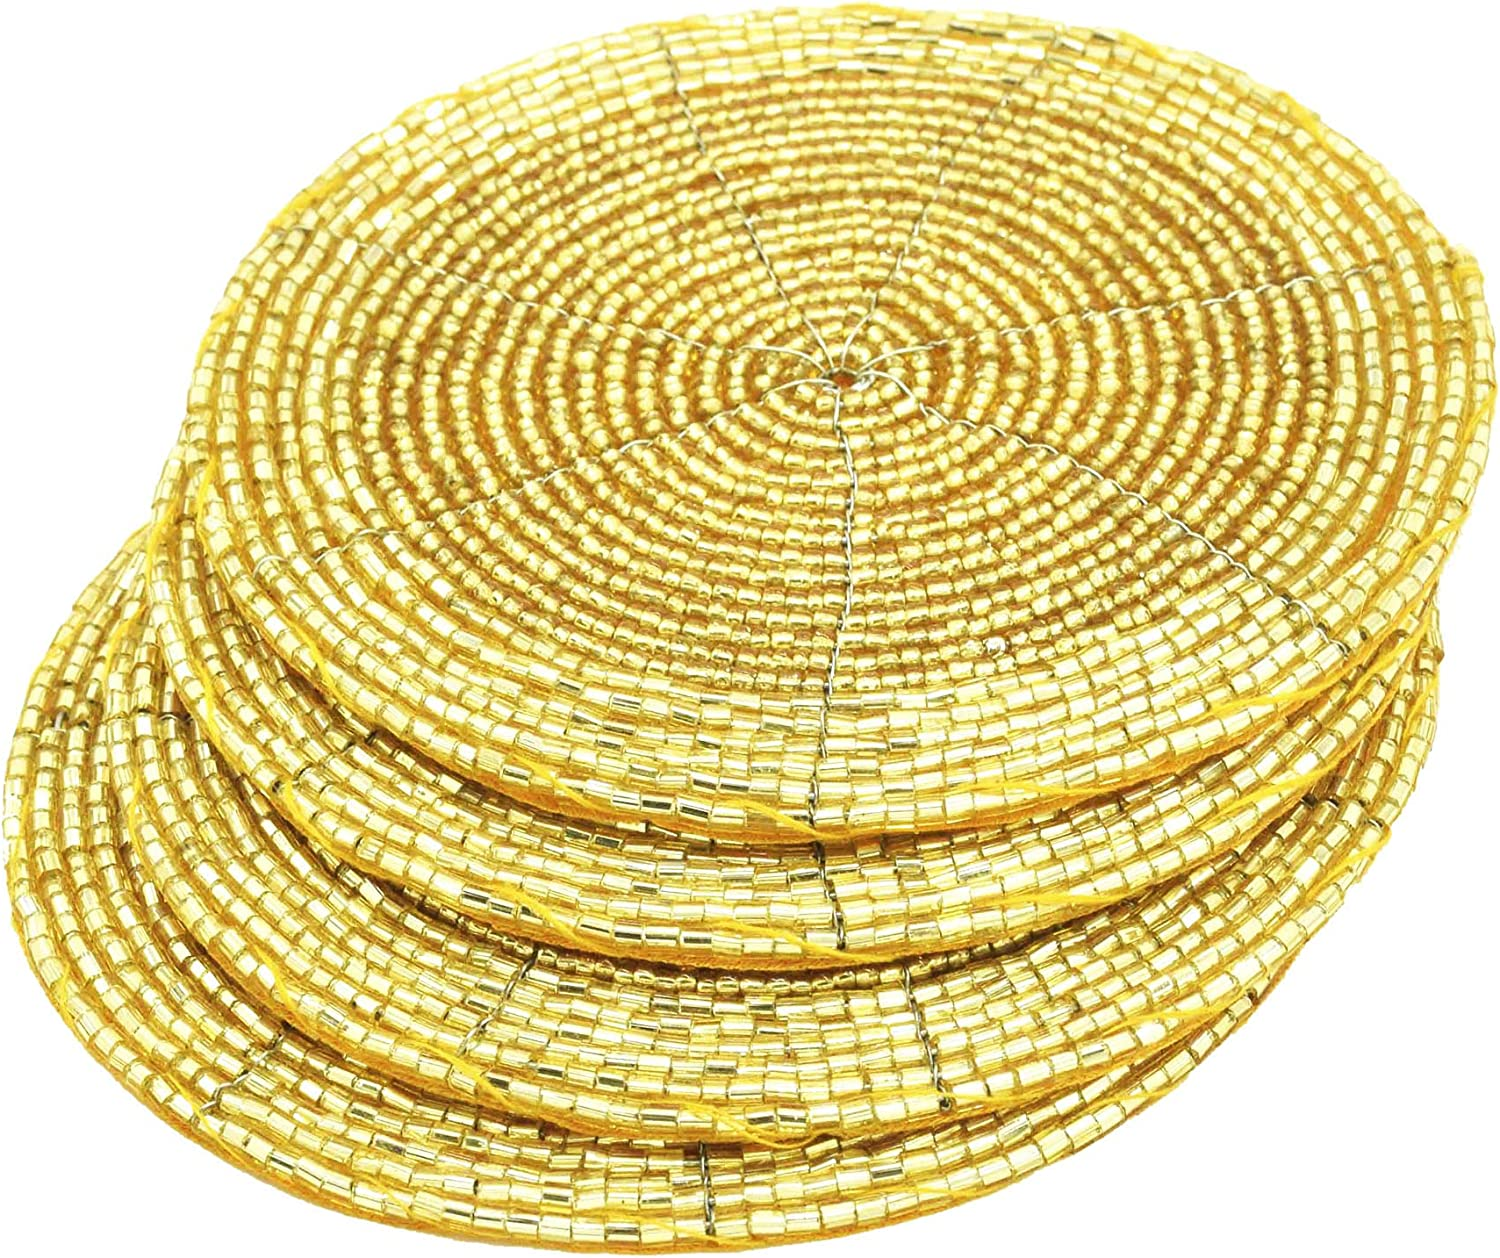 "Terraacraft Shimmering Indian Handmade Beaded Coasters -4"" Round-Set of 4 Gold Coasters, Dining Table Accessories, Decorative Home Decor"